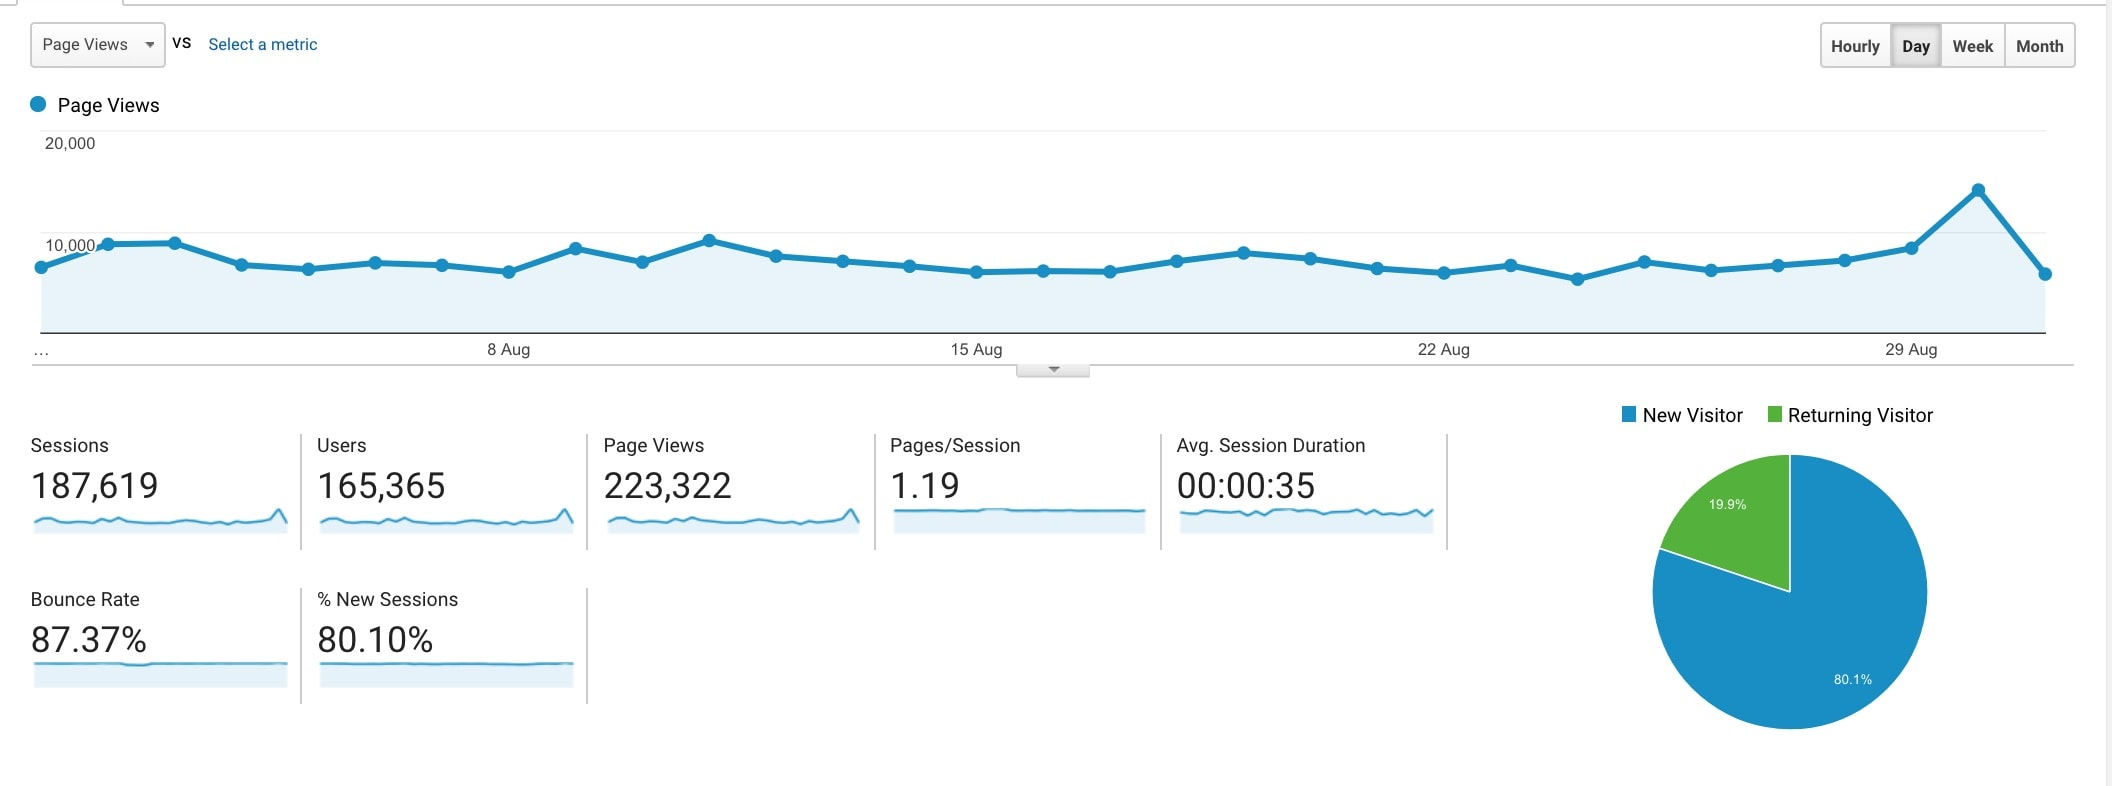 august-income-traffic-report-pageviews